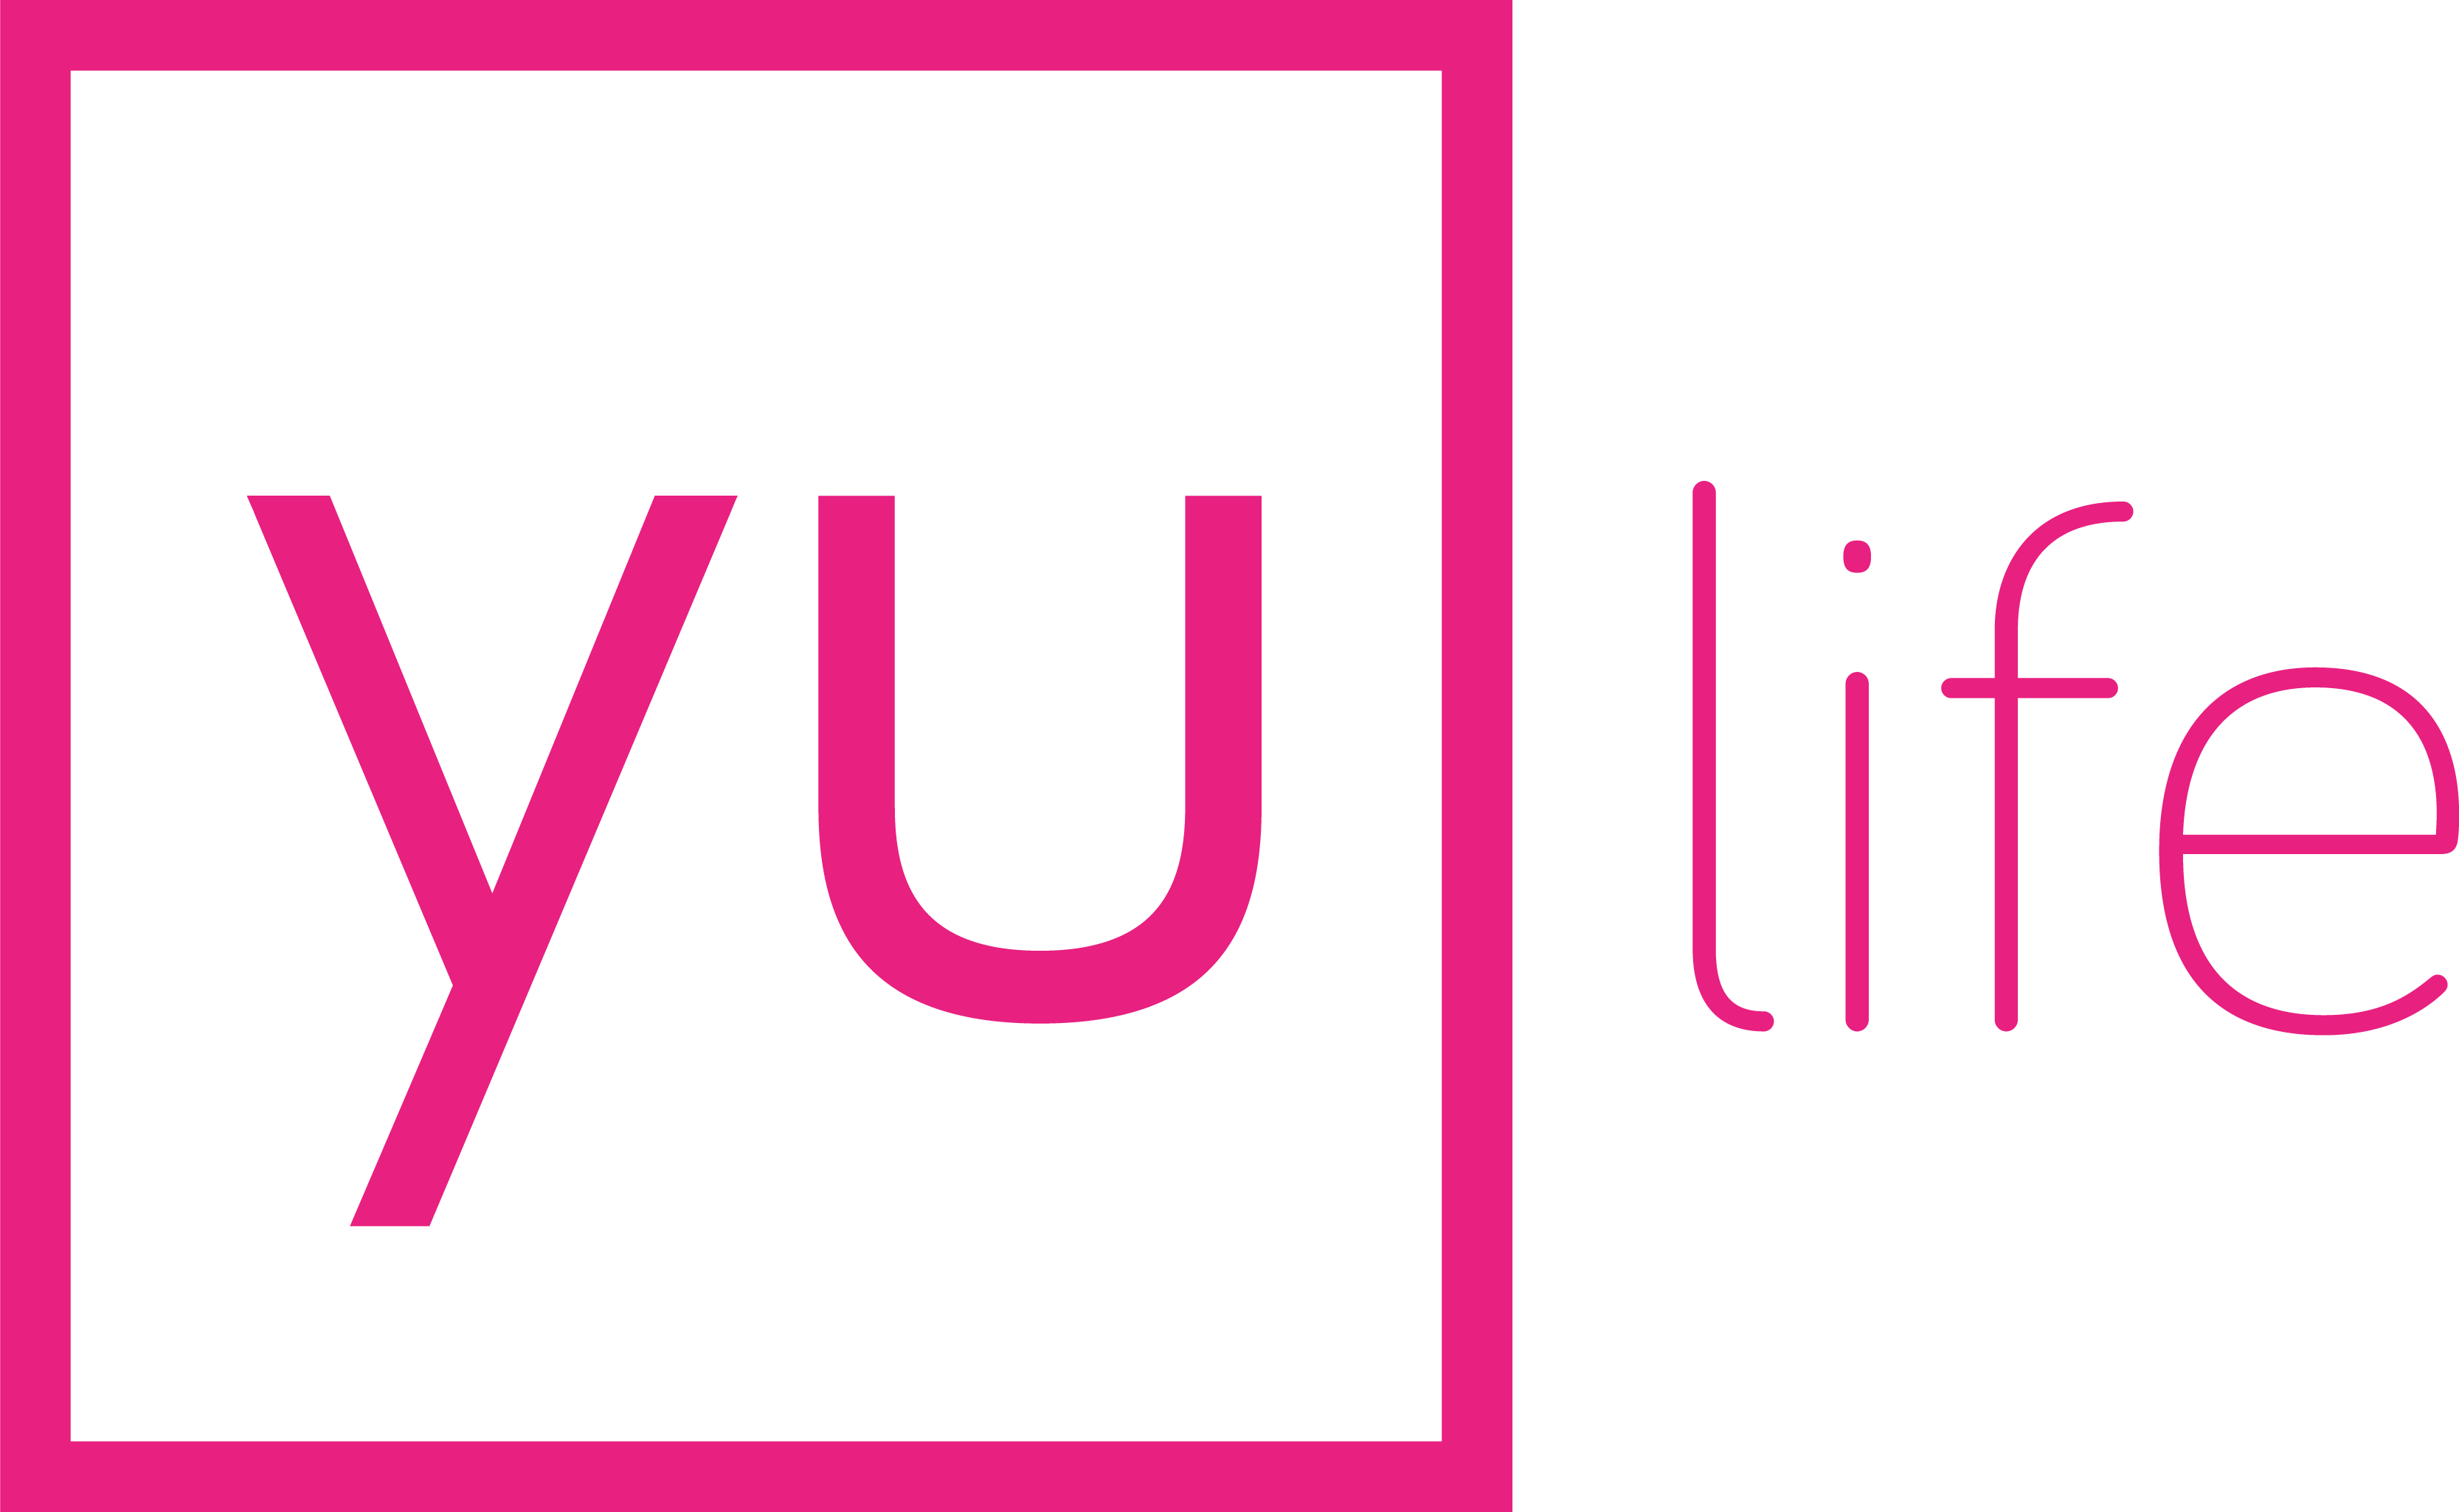 Link to yu life's website